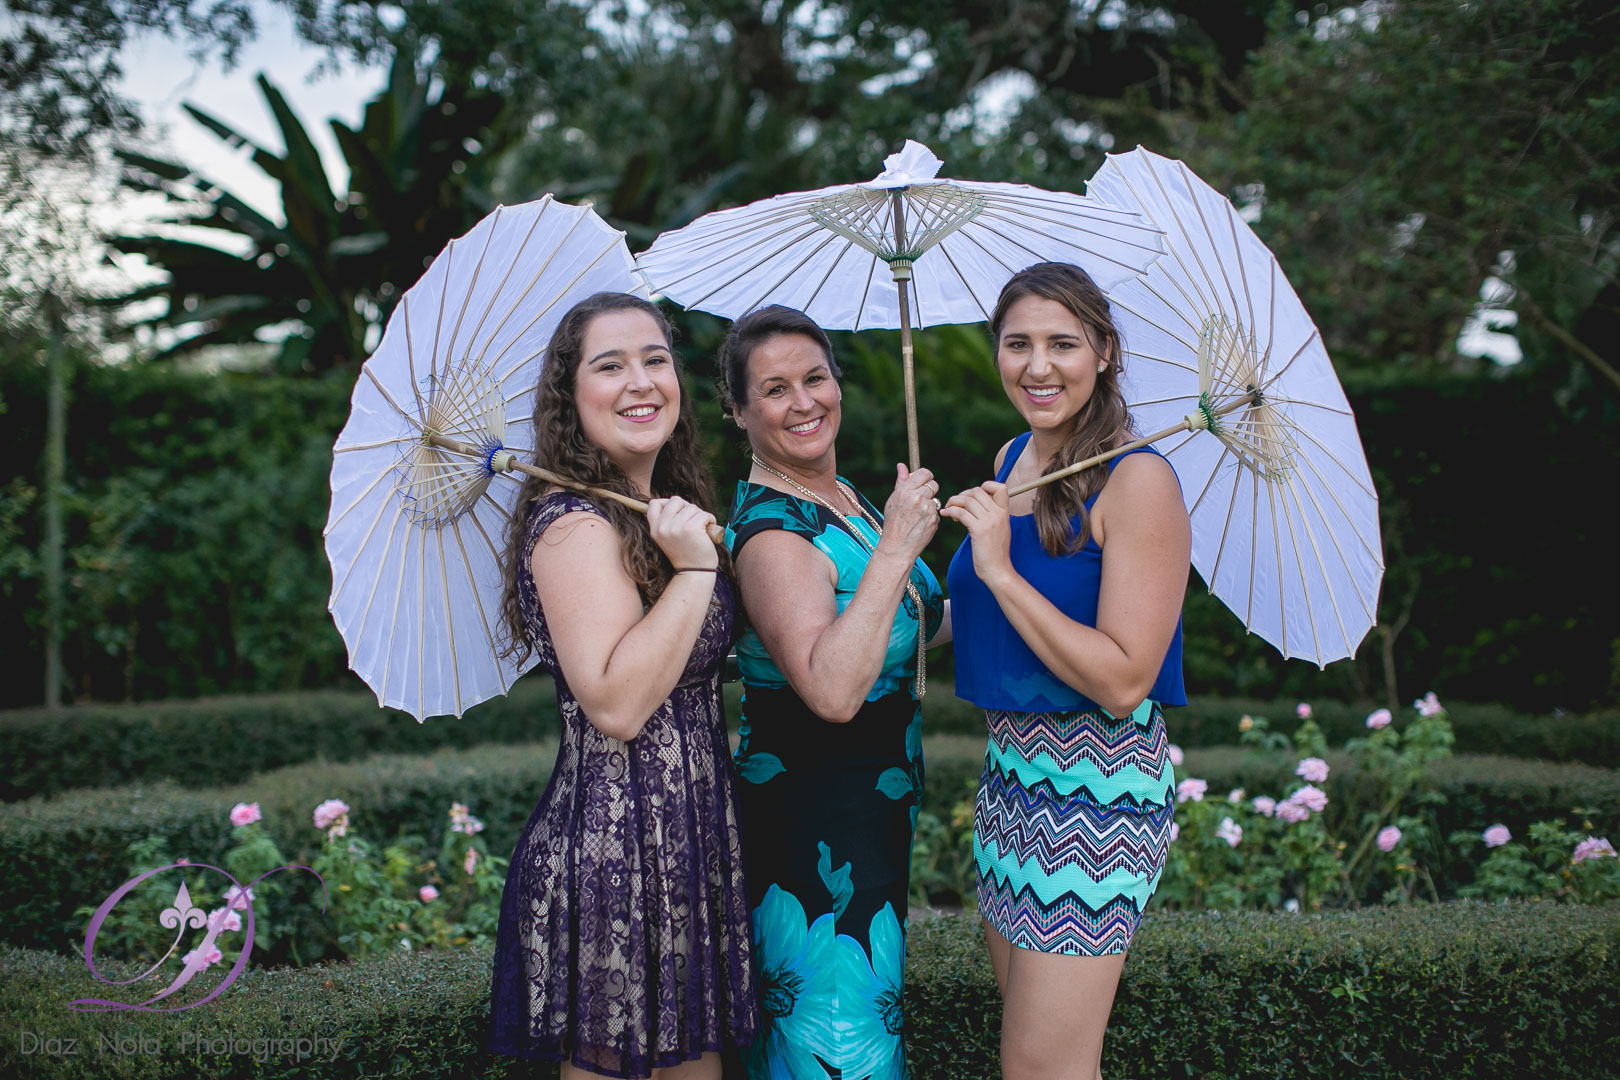 amanda-james-new-orleans-botanical-garden-wedding-5505-8-105